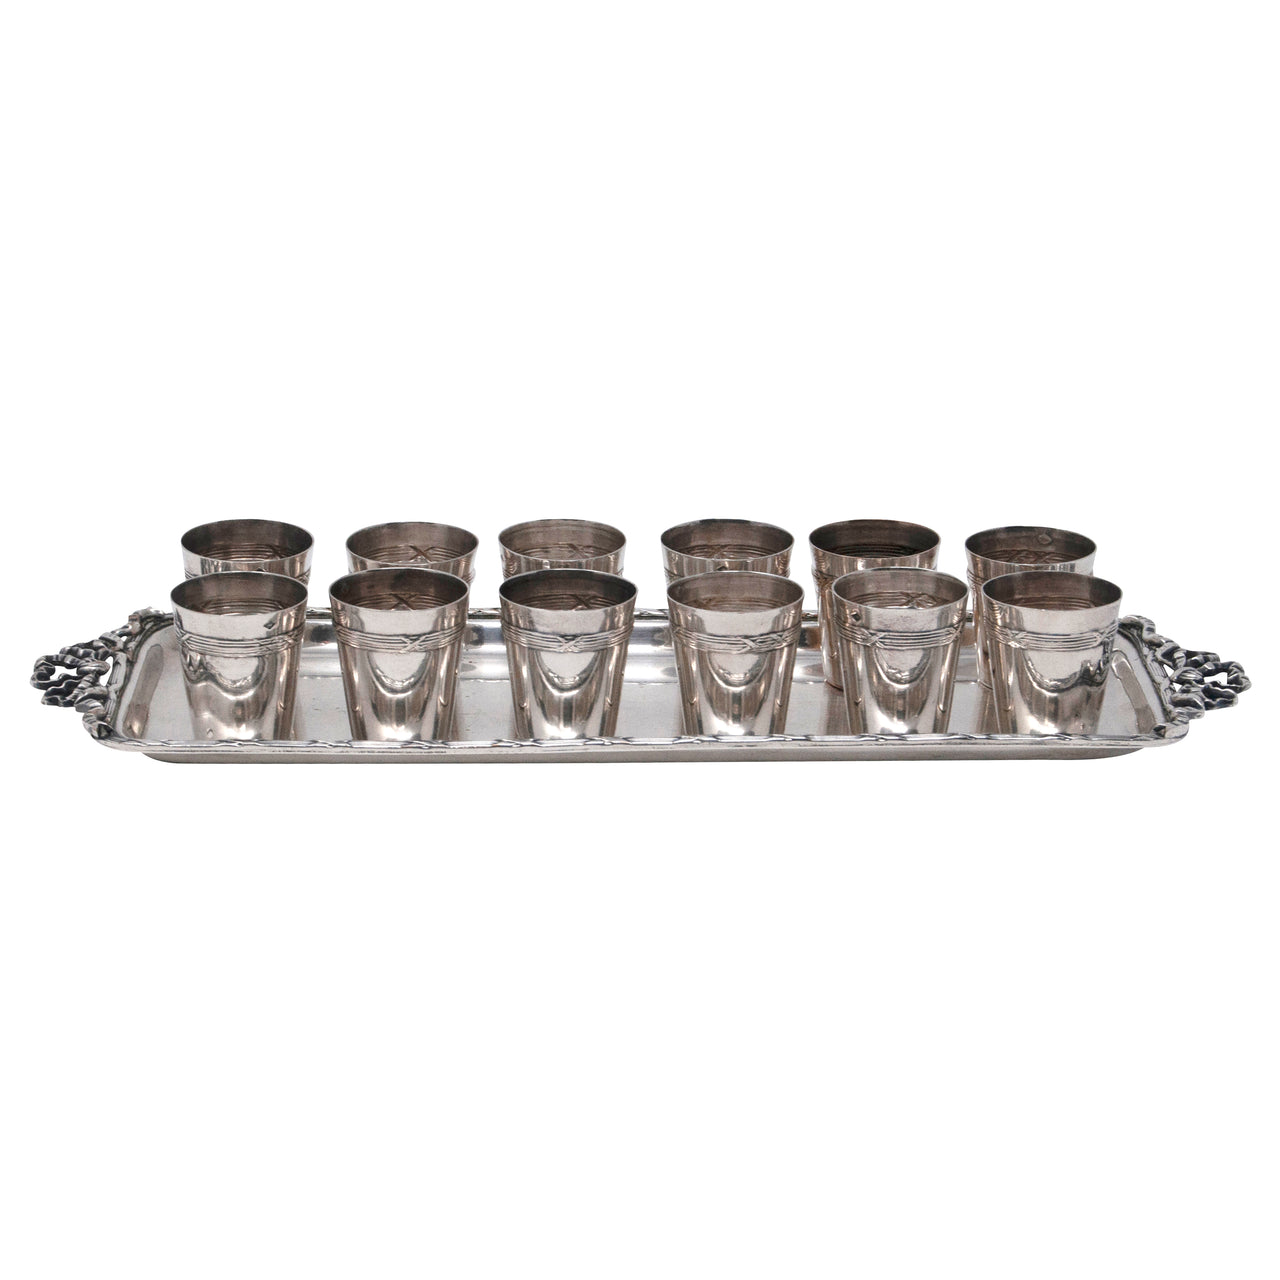 Vintage French Silver Plate Thimbles and Cocktail Tray Set | The Hour Shop